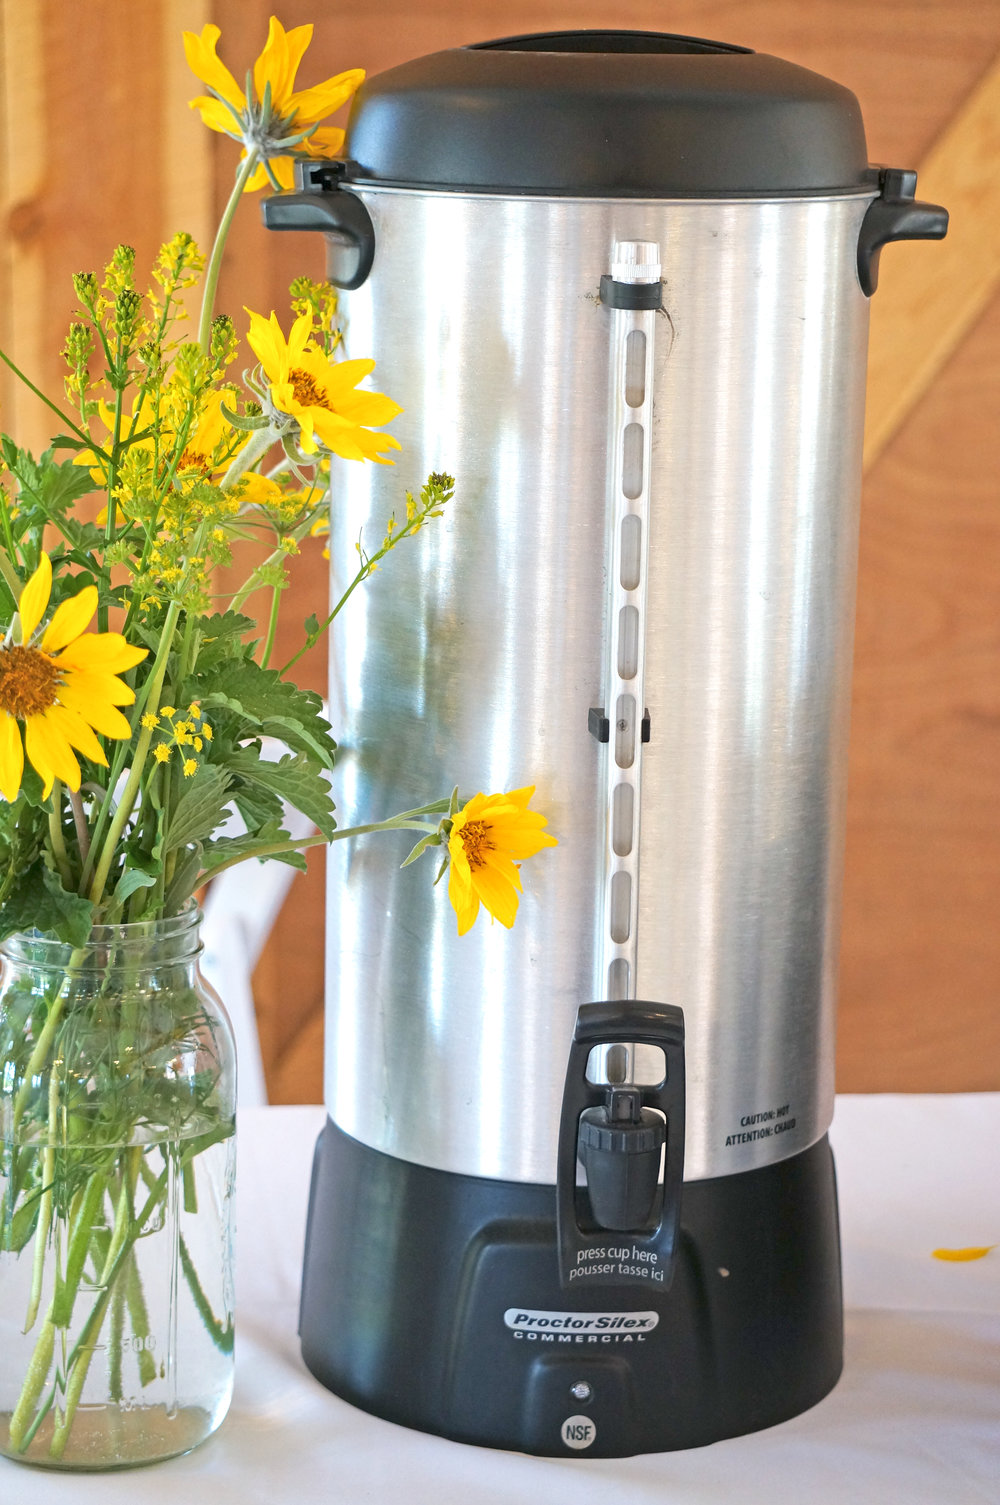 100 cup Coffee Urn - $20